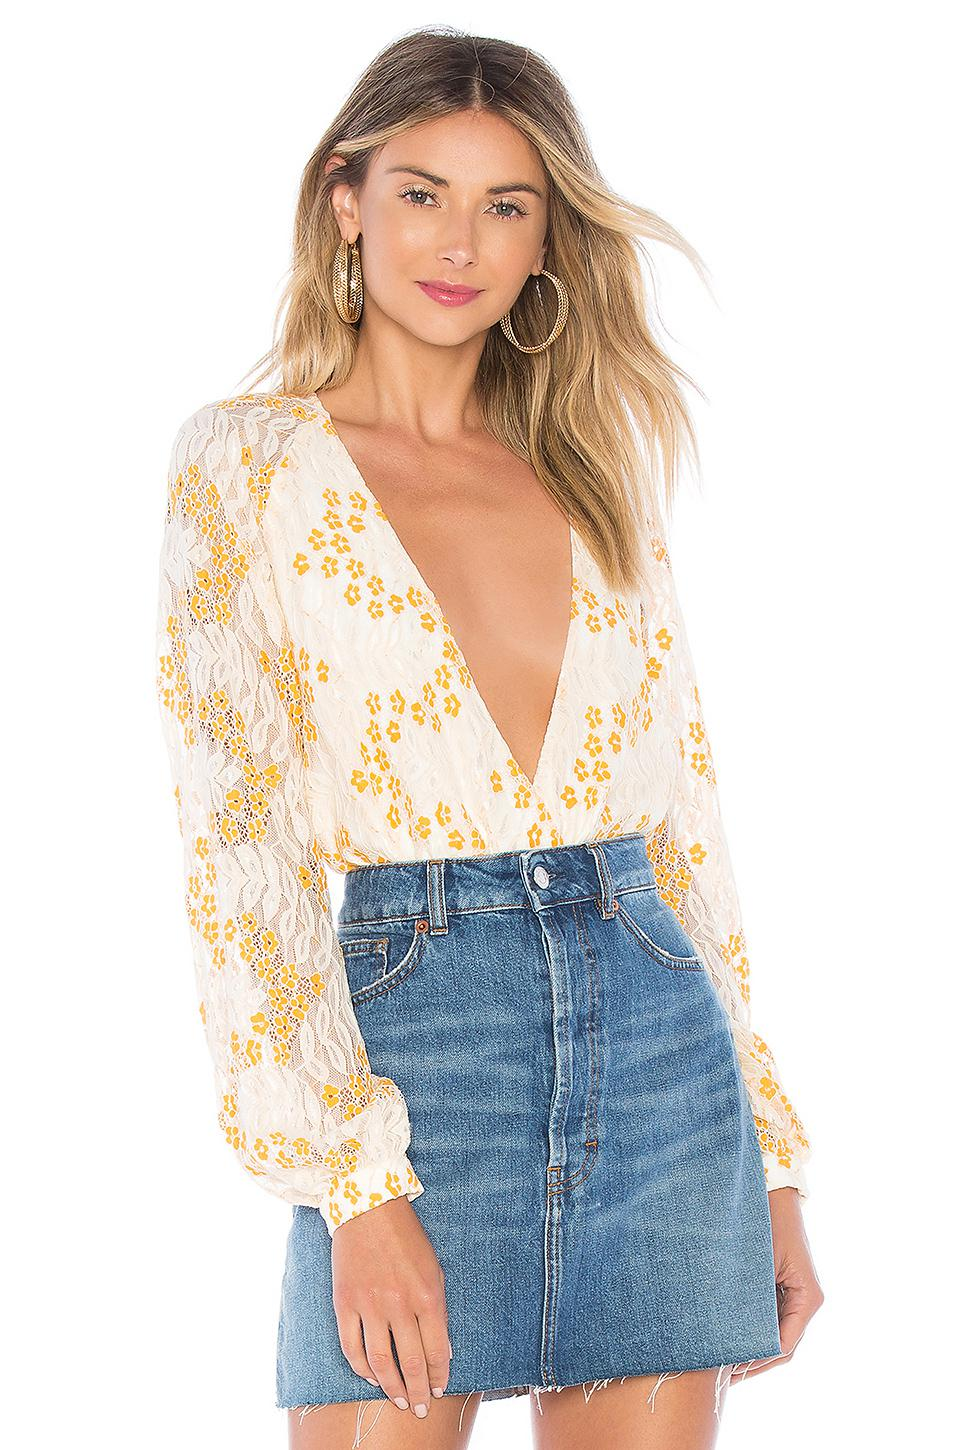 Lyst - Lovers + Friends Layla Bodysuit In Cream c2983ecc3